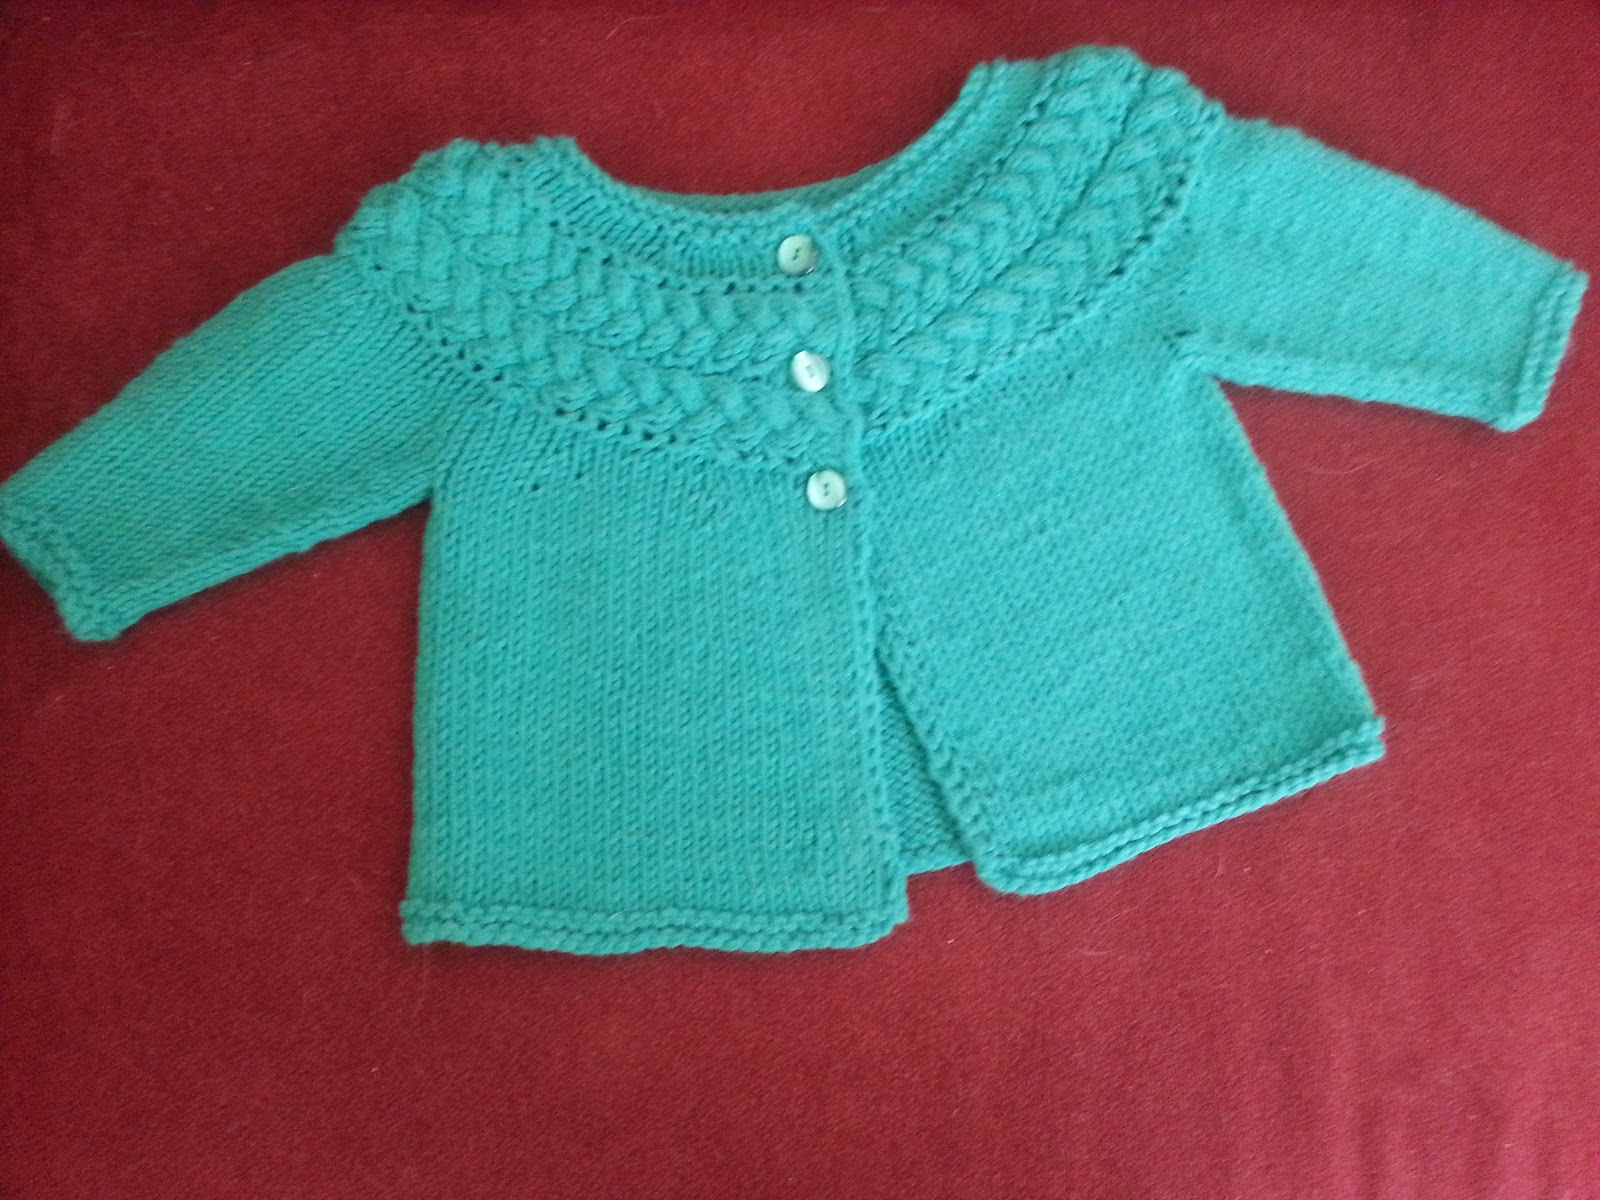 Modern Crafter: Sideways Cable Yoke Baby Sweater